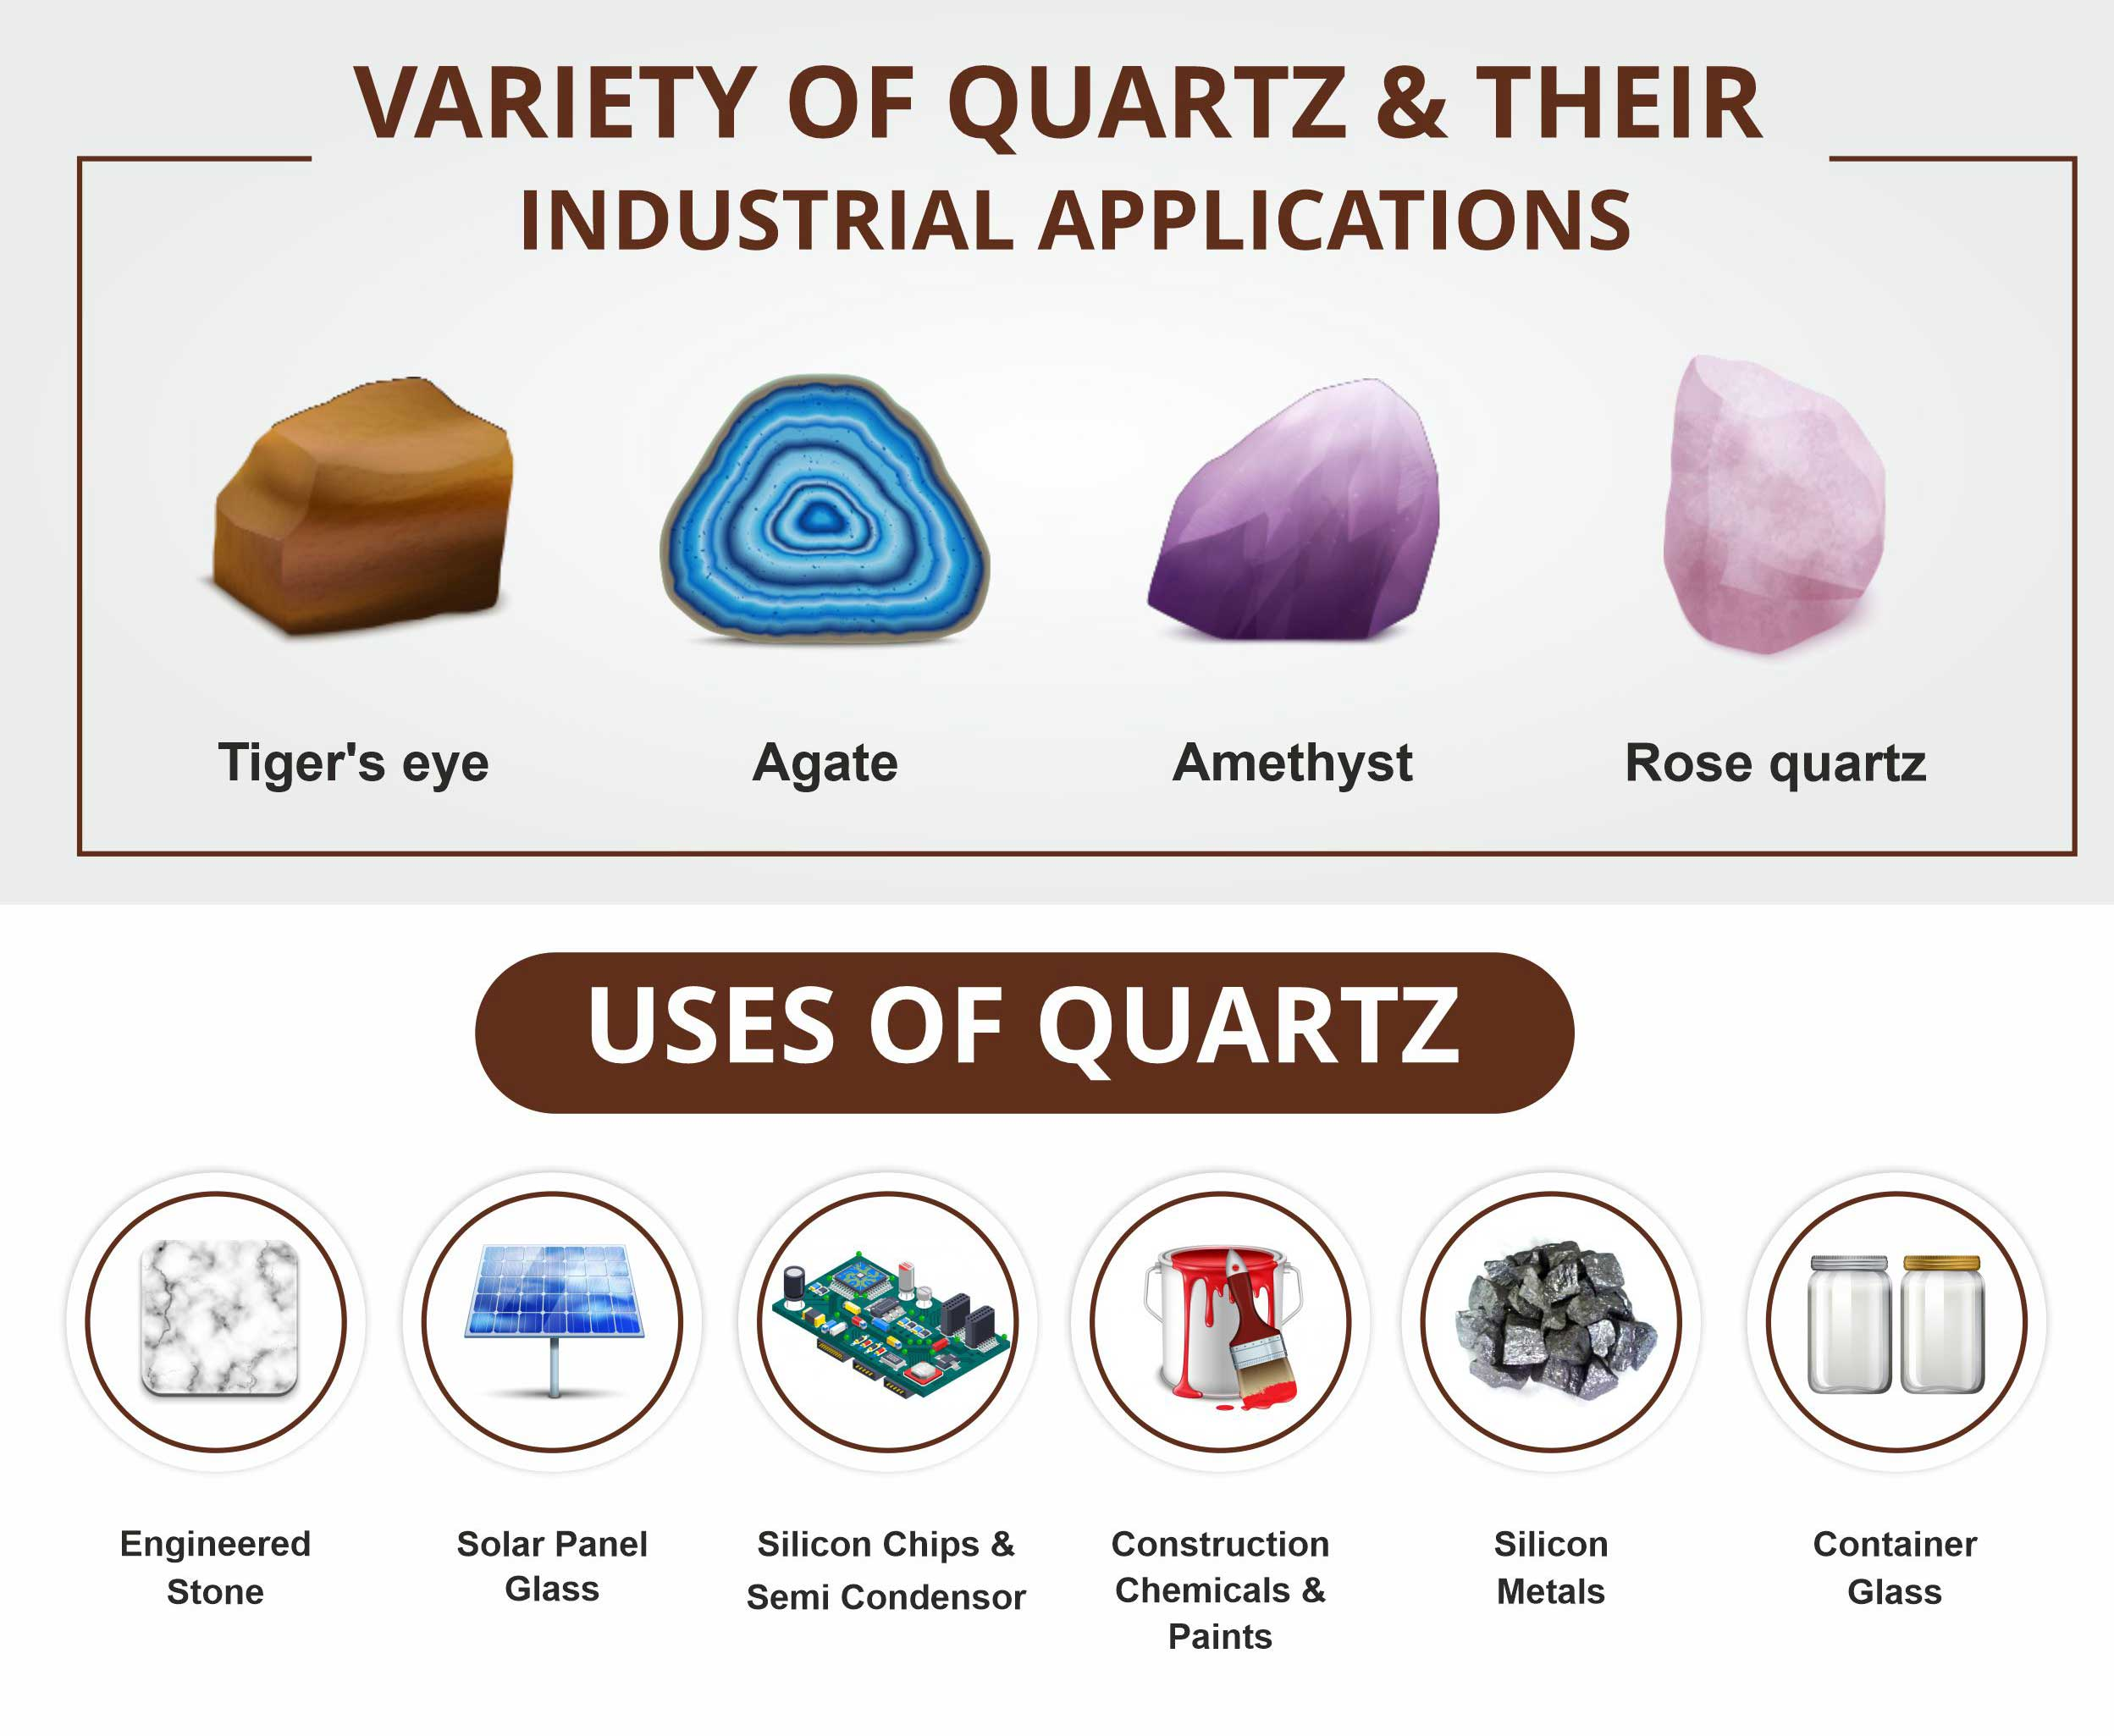 Use of quartz in different industries